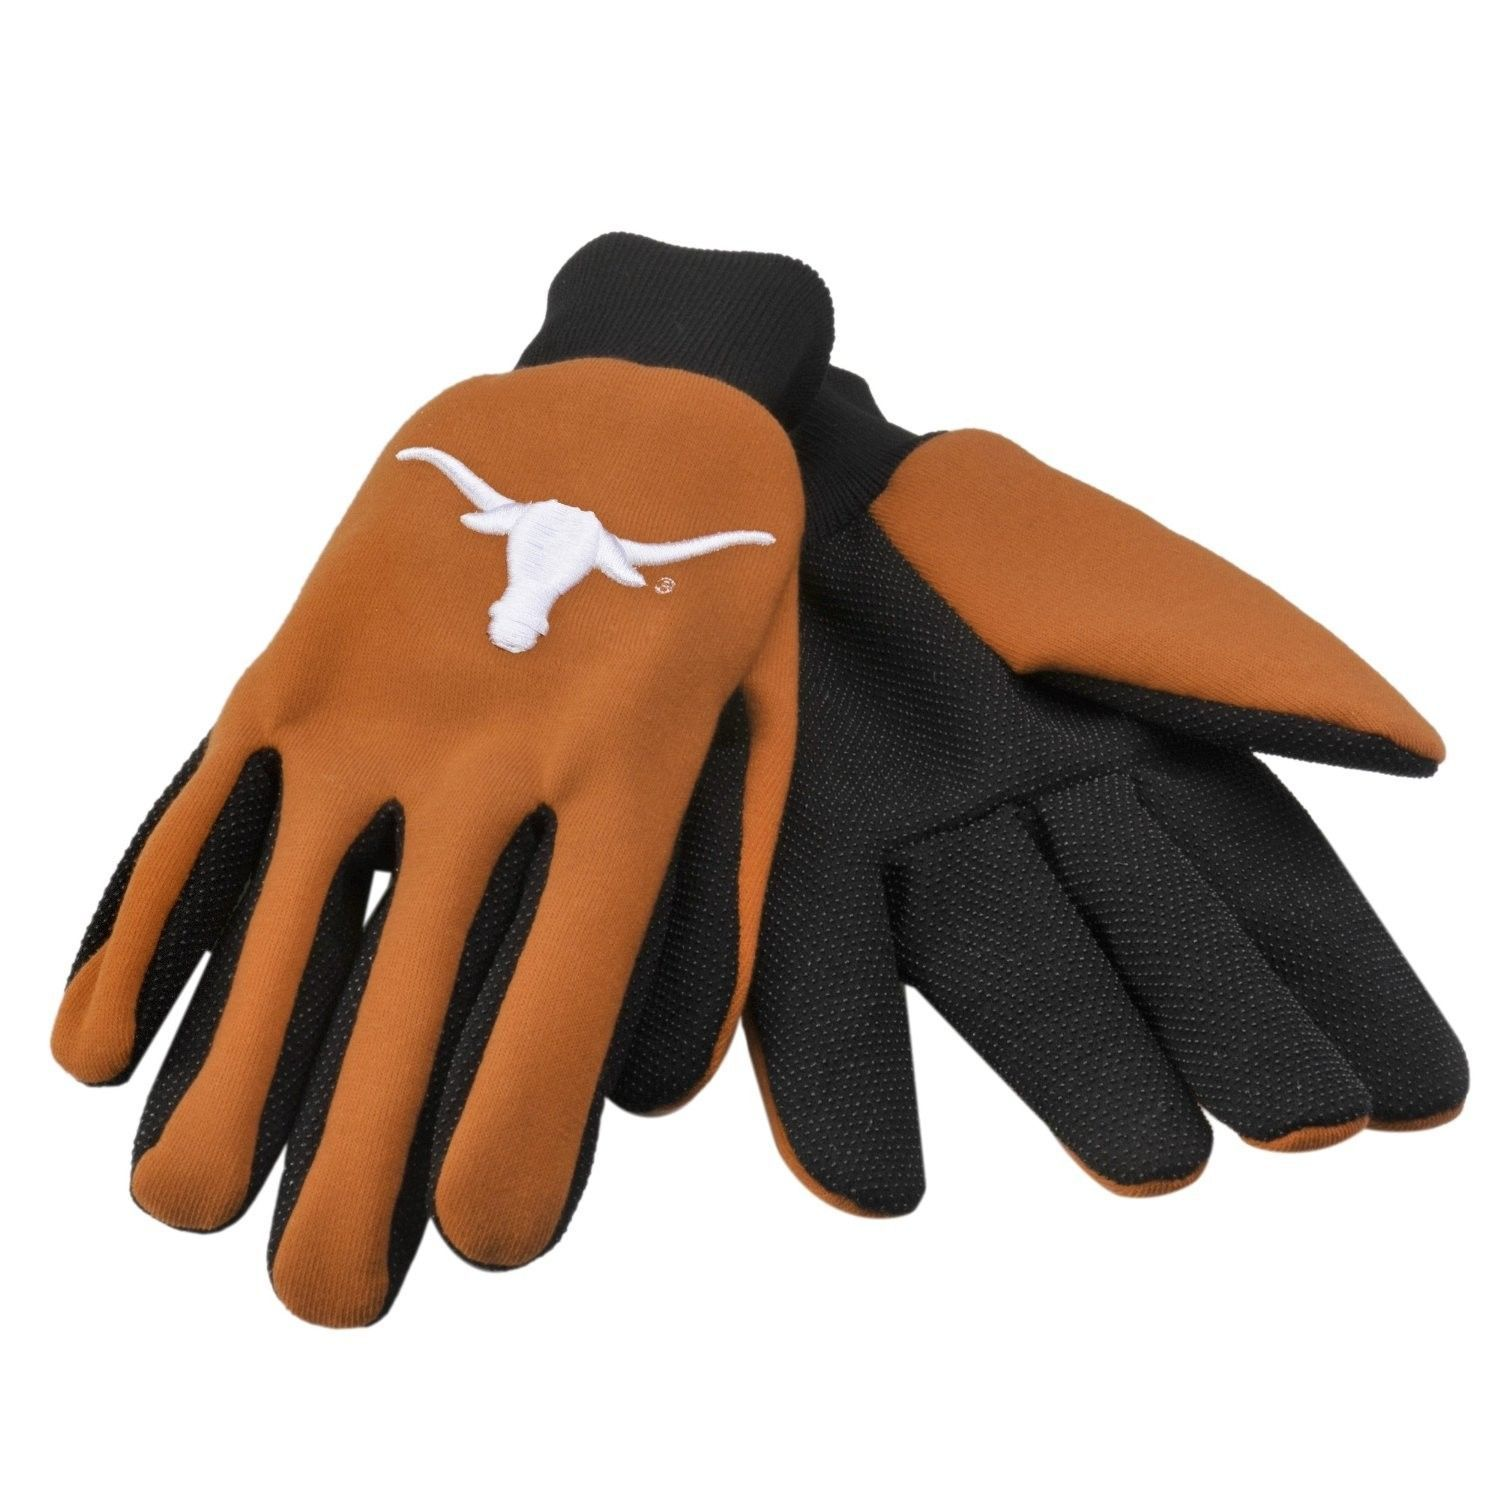 TEXAS LONGHORNS TEAM TAILGATE GAME DAY PARTY UTILITY WORK GLOVES